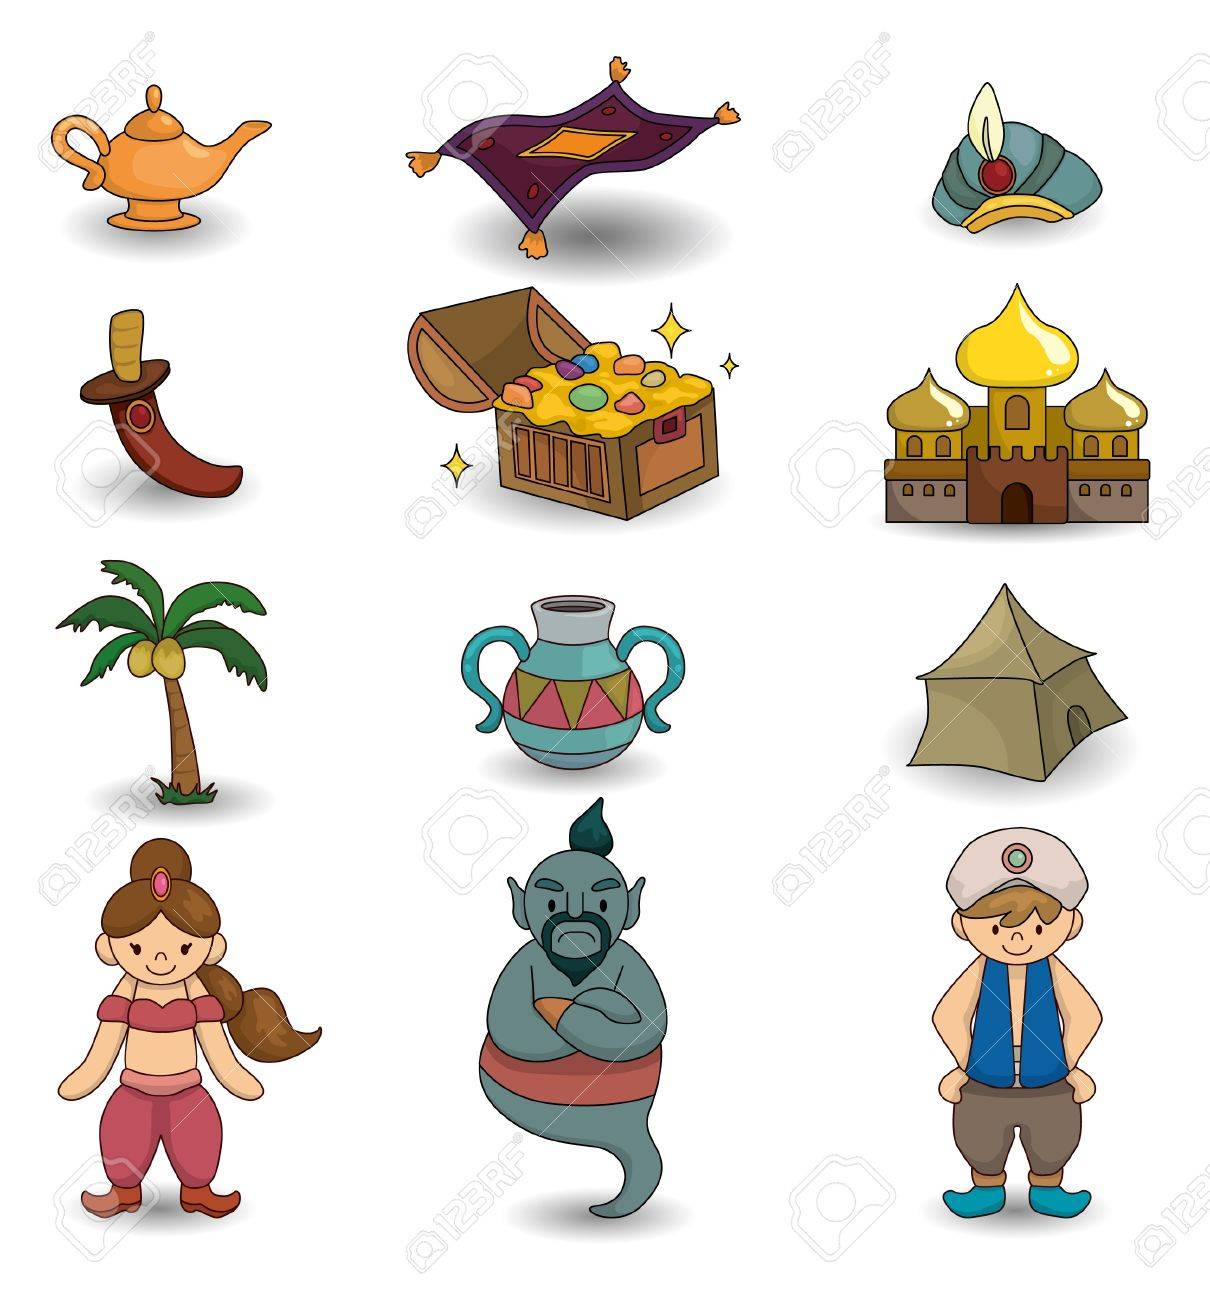 cartoon Lamp of Aladdin icon Stock Vector - 9673816